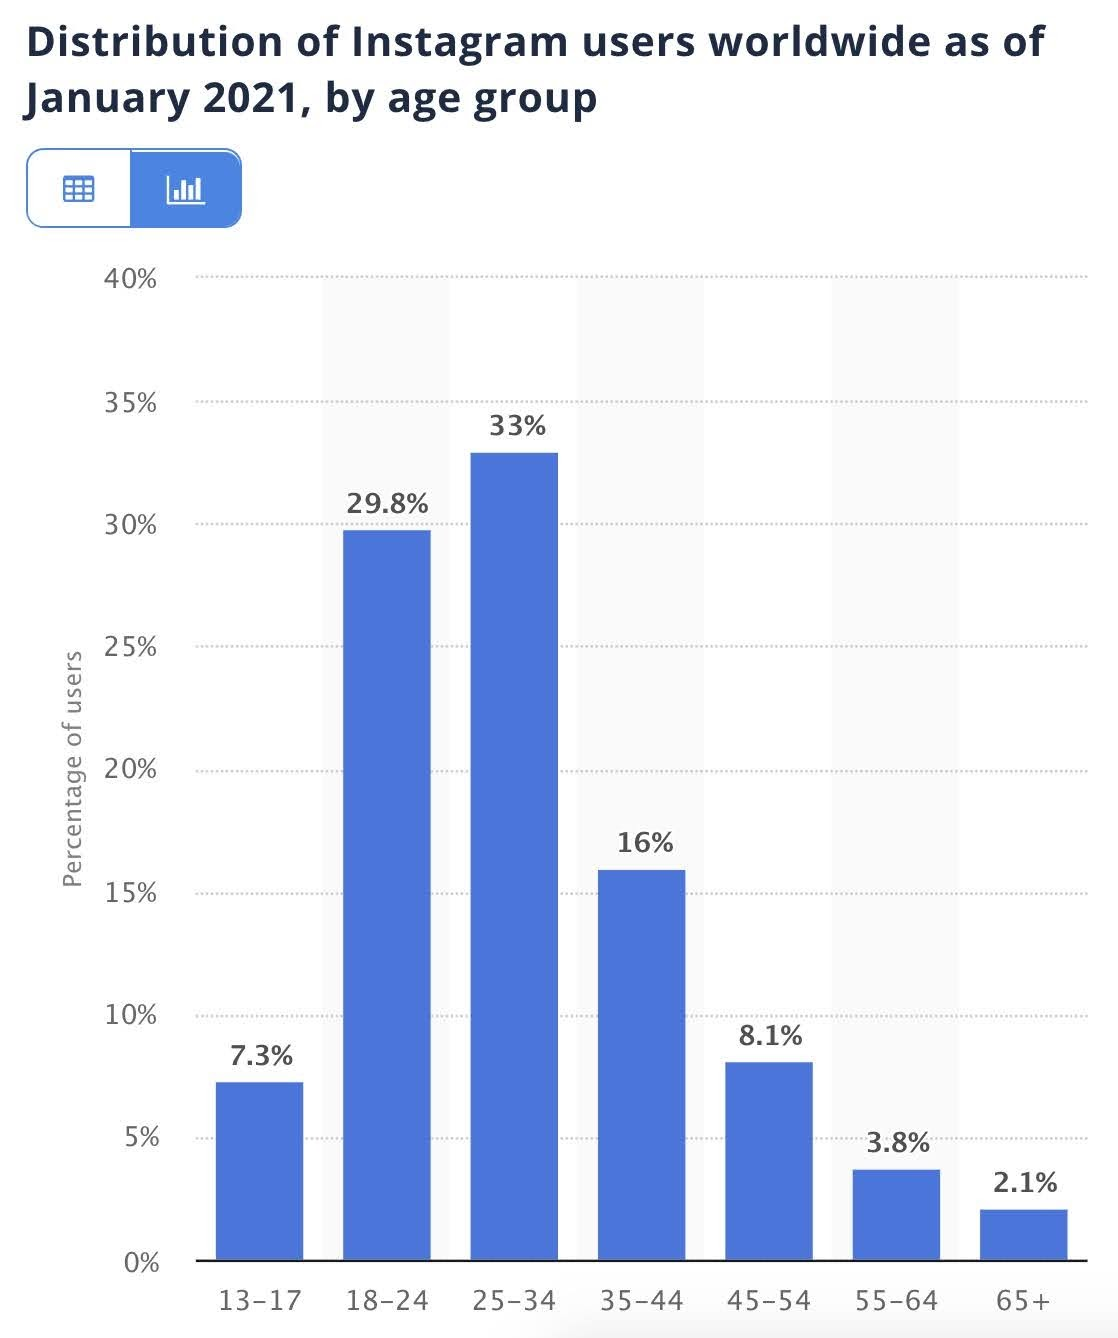 Distribution of Instagram users worldwide as of Jan 2021, by age group.